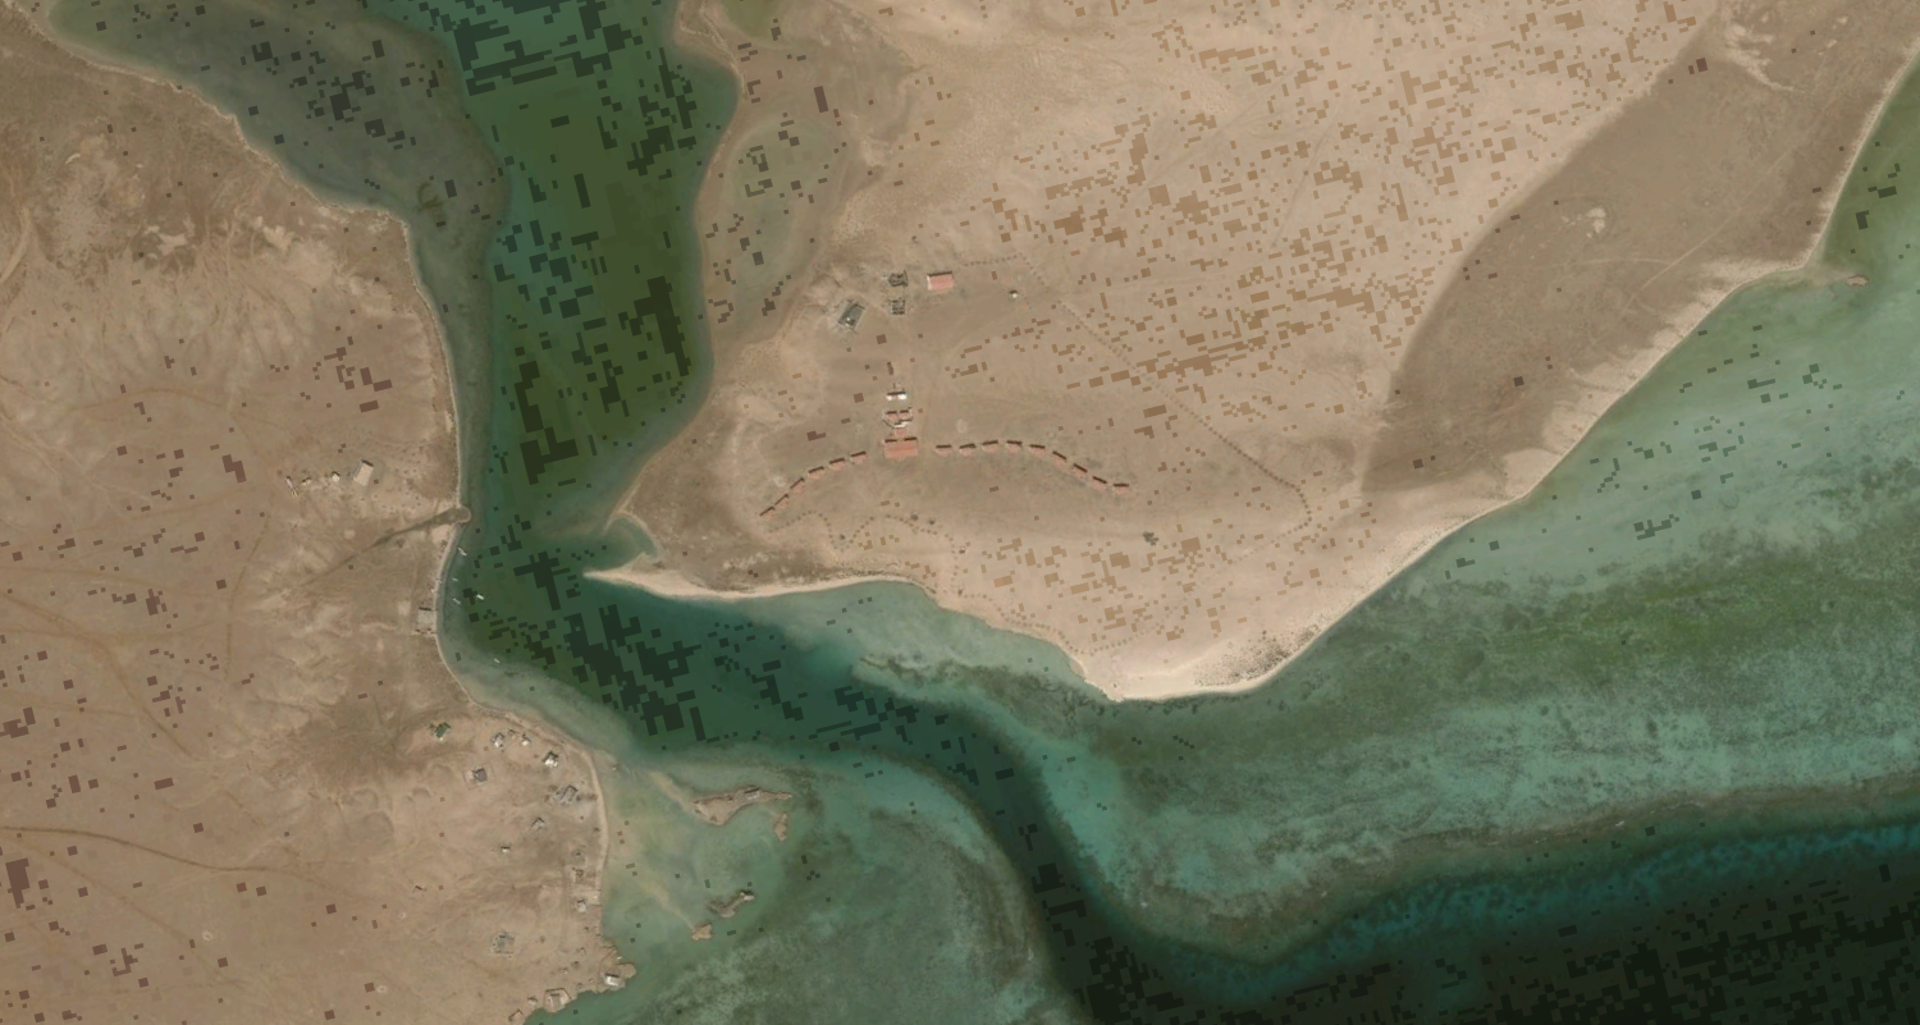 A satellite image of where the Arous Holiday Village was situated in Sudan in the 1980s.